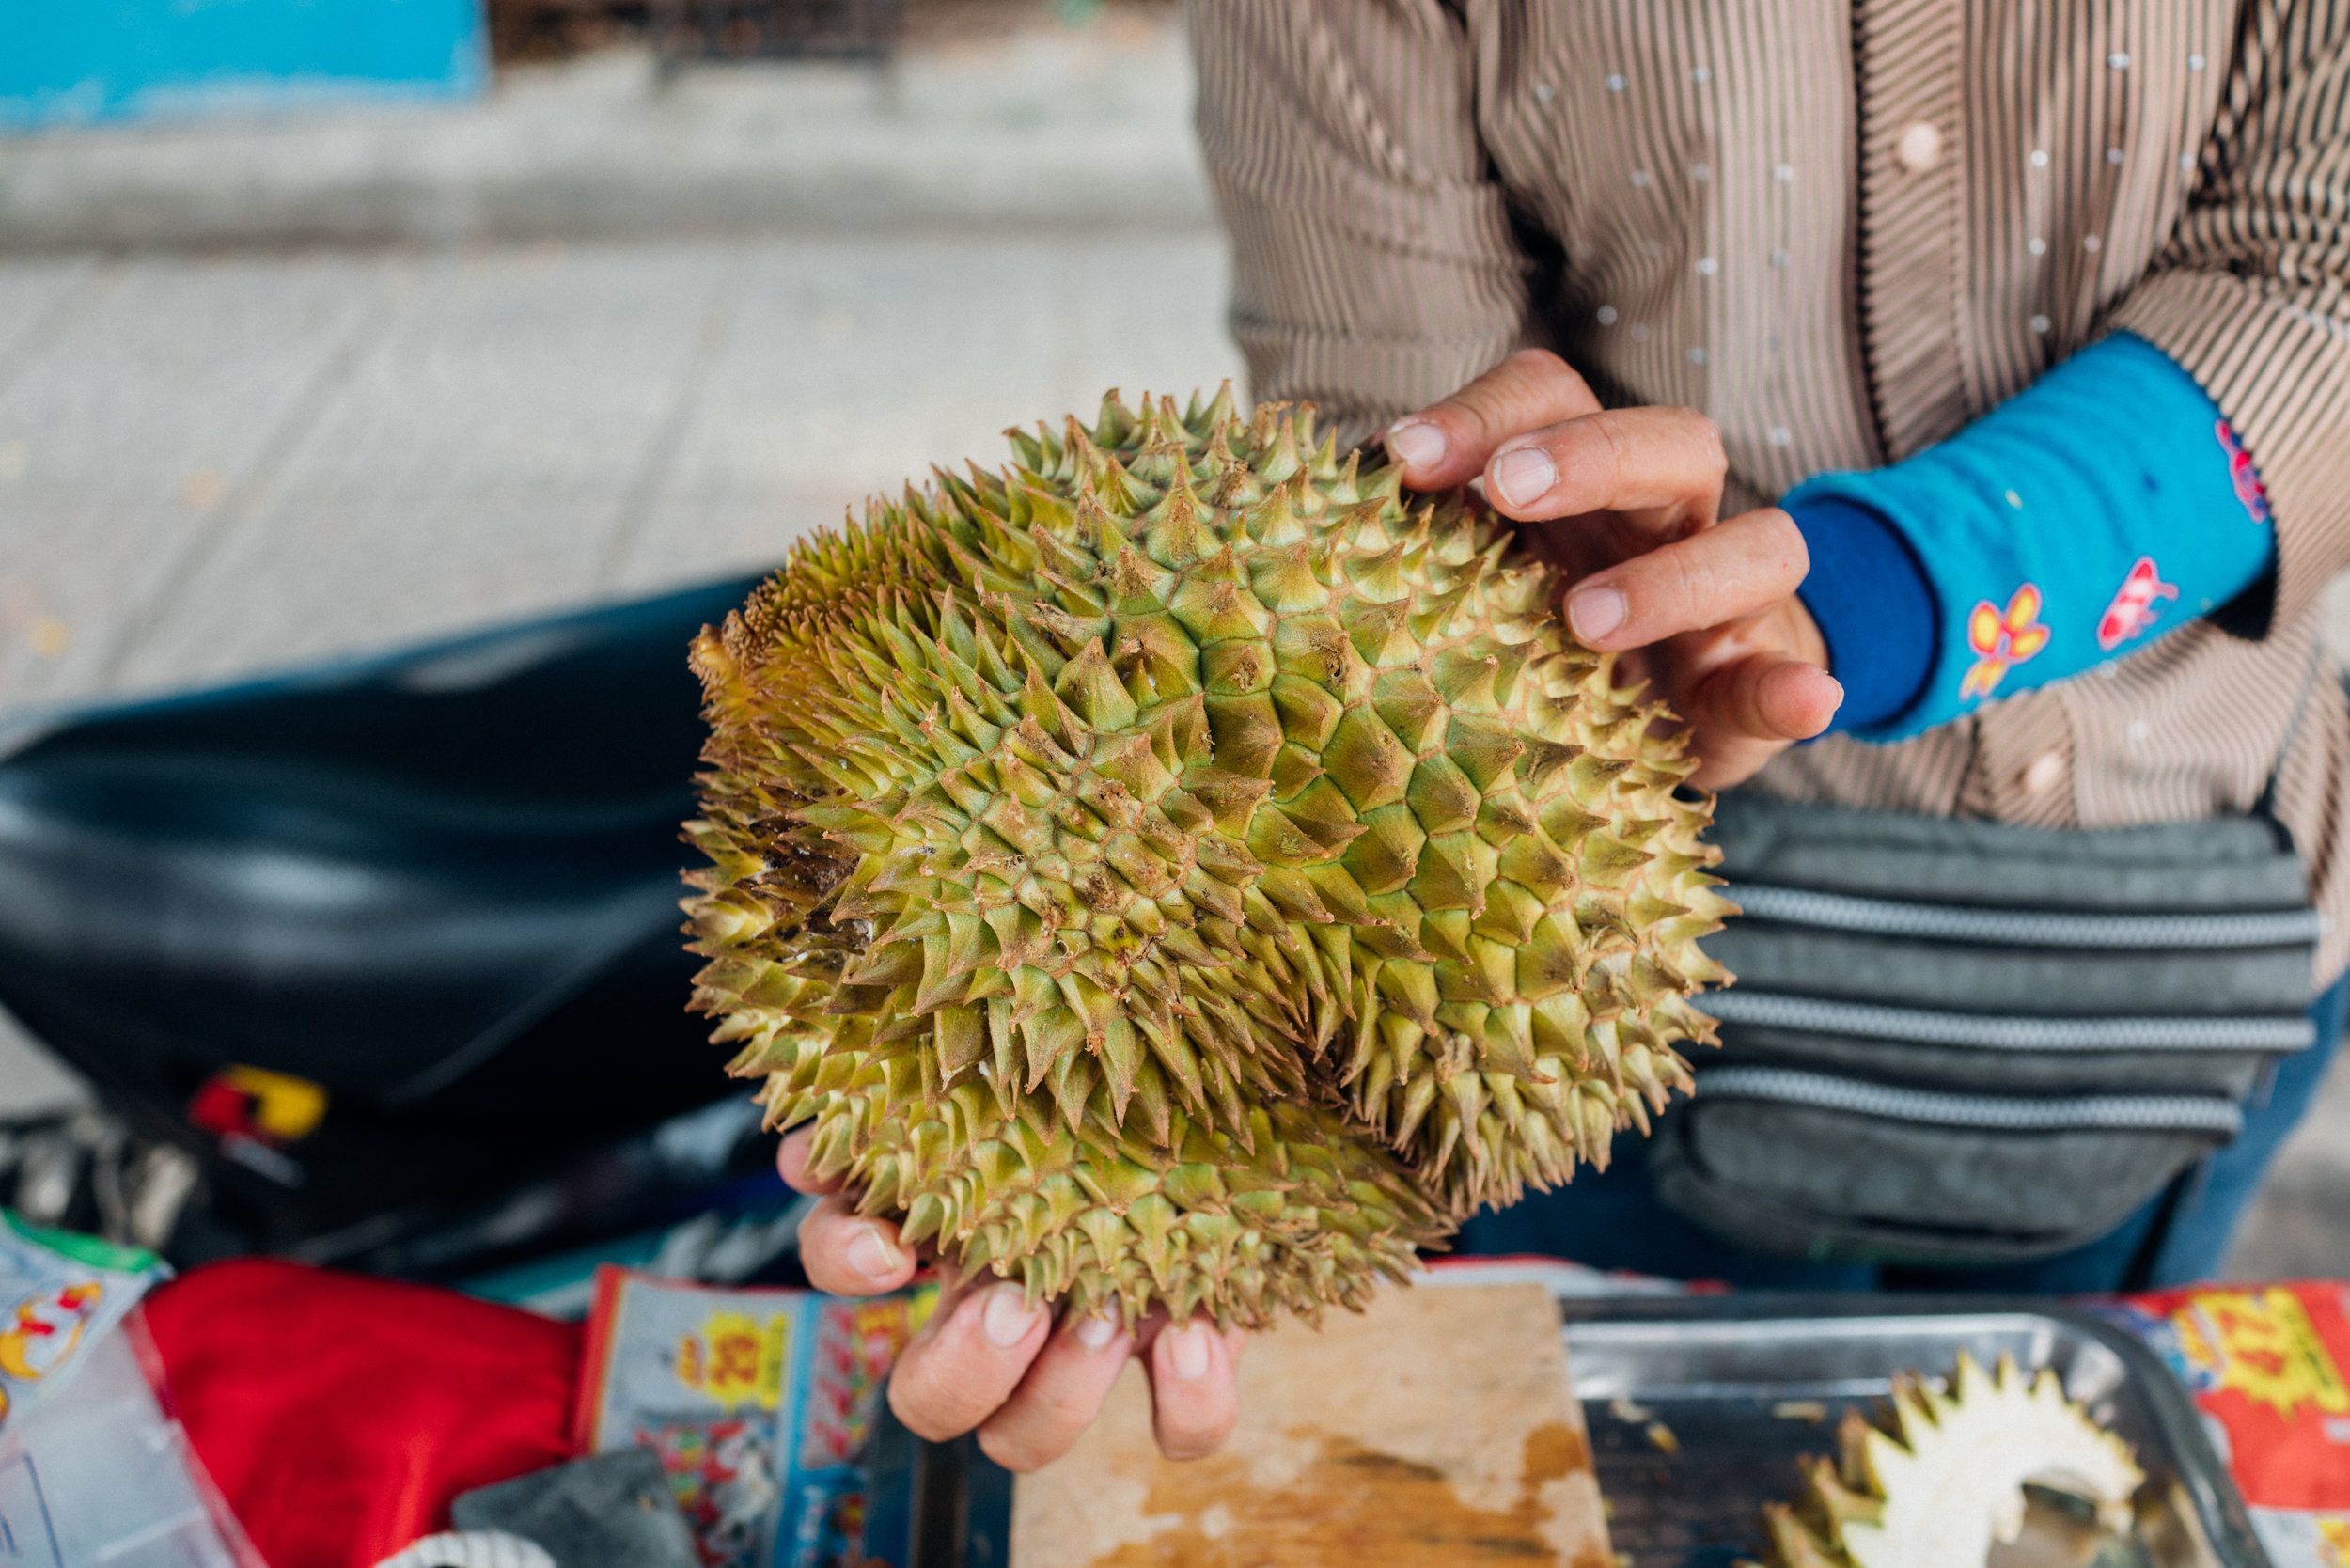 Durians are banned as weapons, due to their sharp thorns